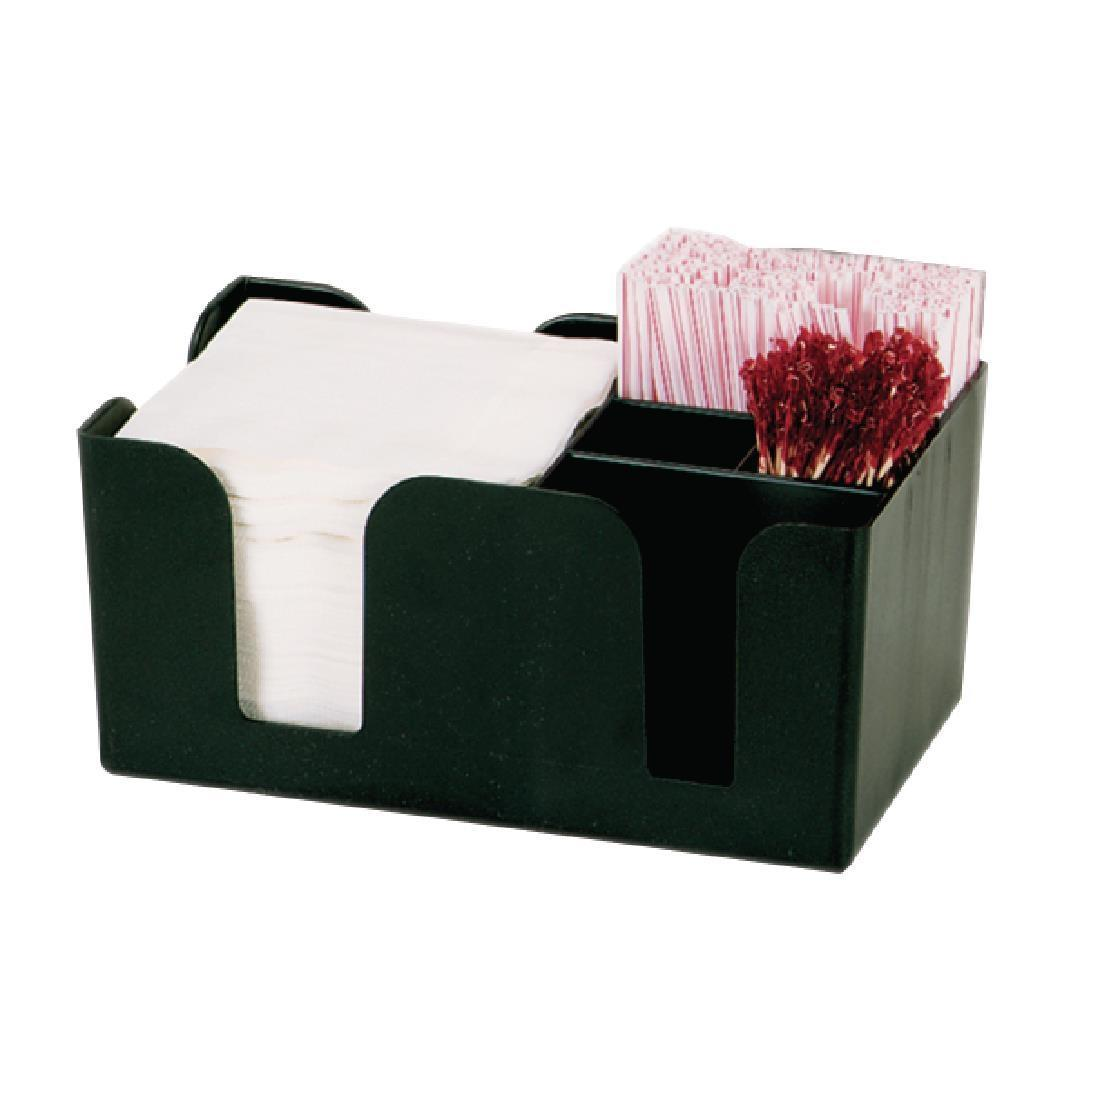 Kristallon Plastic Bar Caddy Black - Each - F980